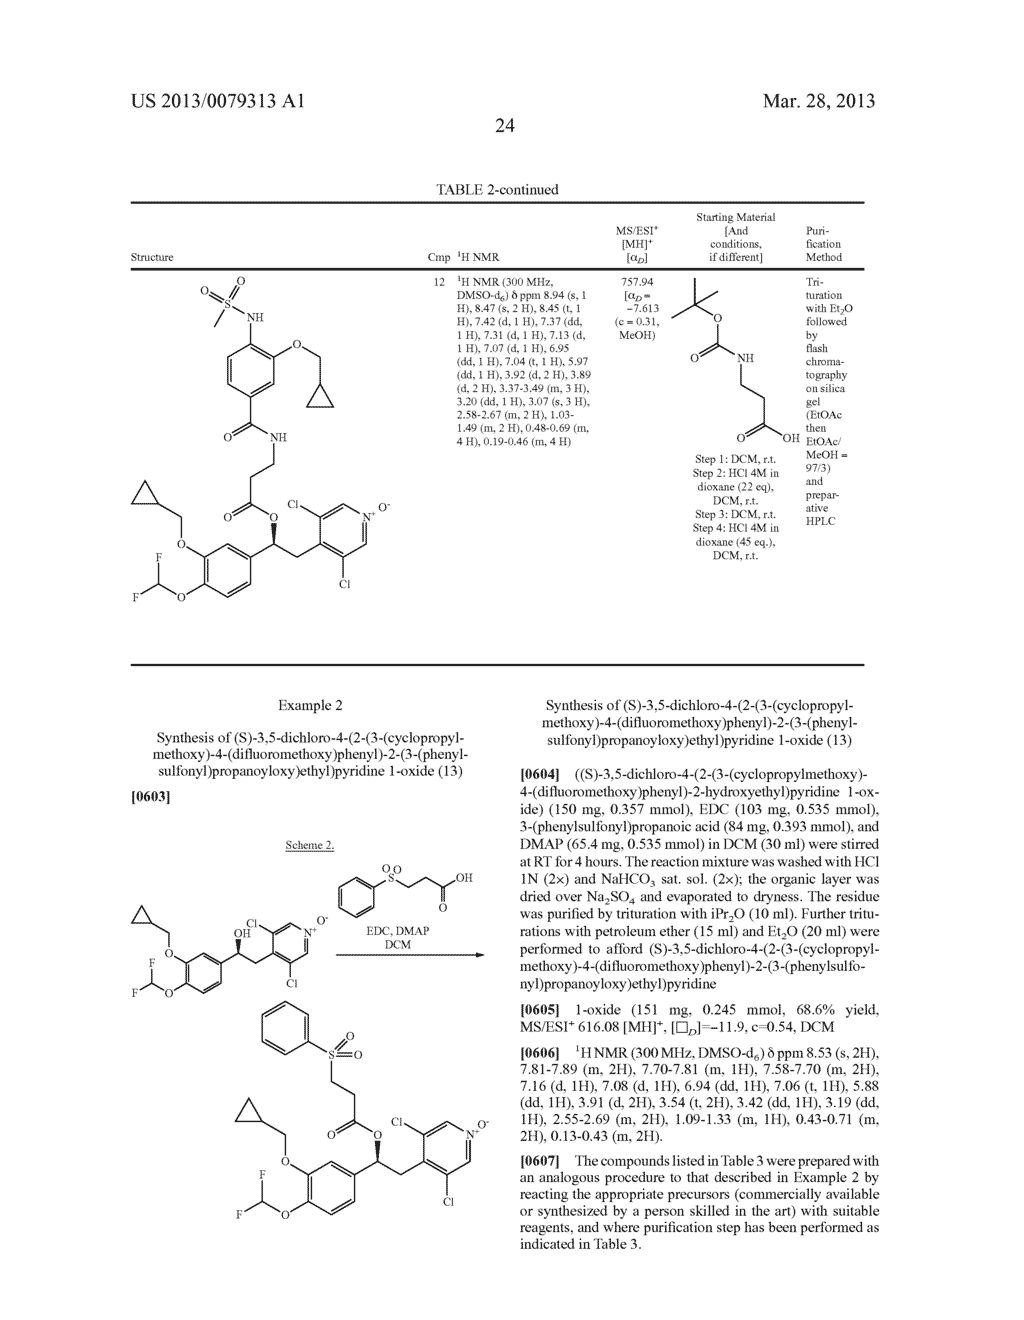 DERIVATIVES OF 1-PHENYL-2-PYRIDINYL ALKYL ALCOHOLS AS PHOSPHODIESTERASE     INHIBITORS - diagram, schematic, and image 25